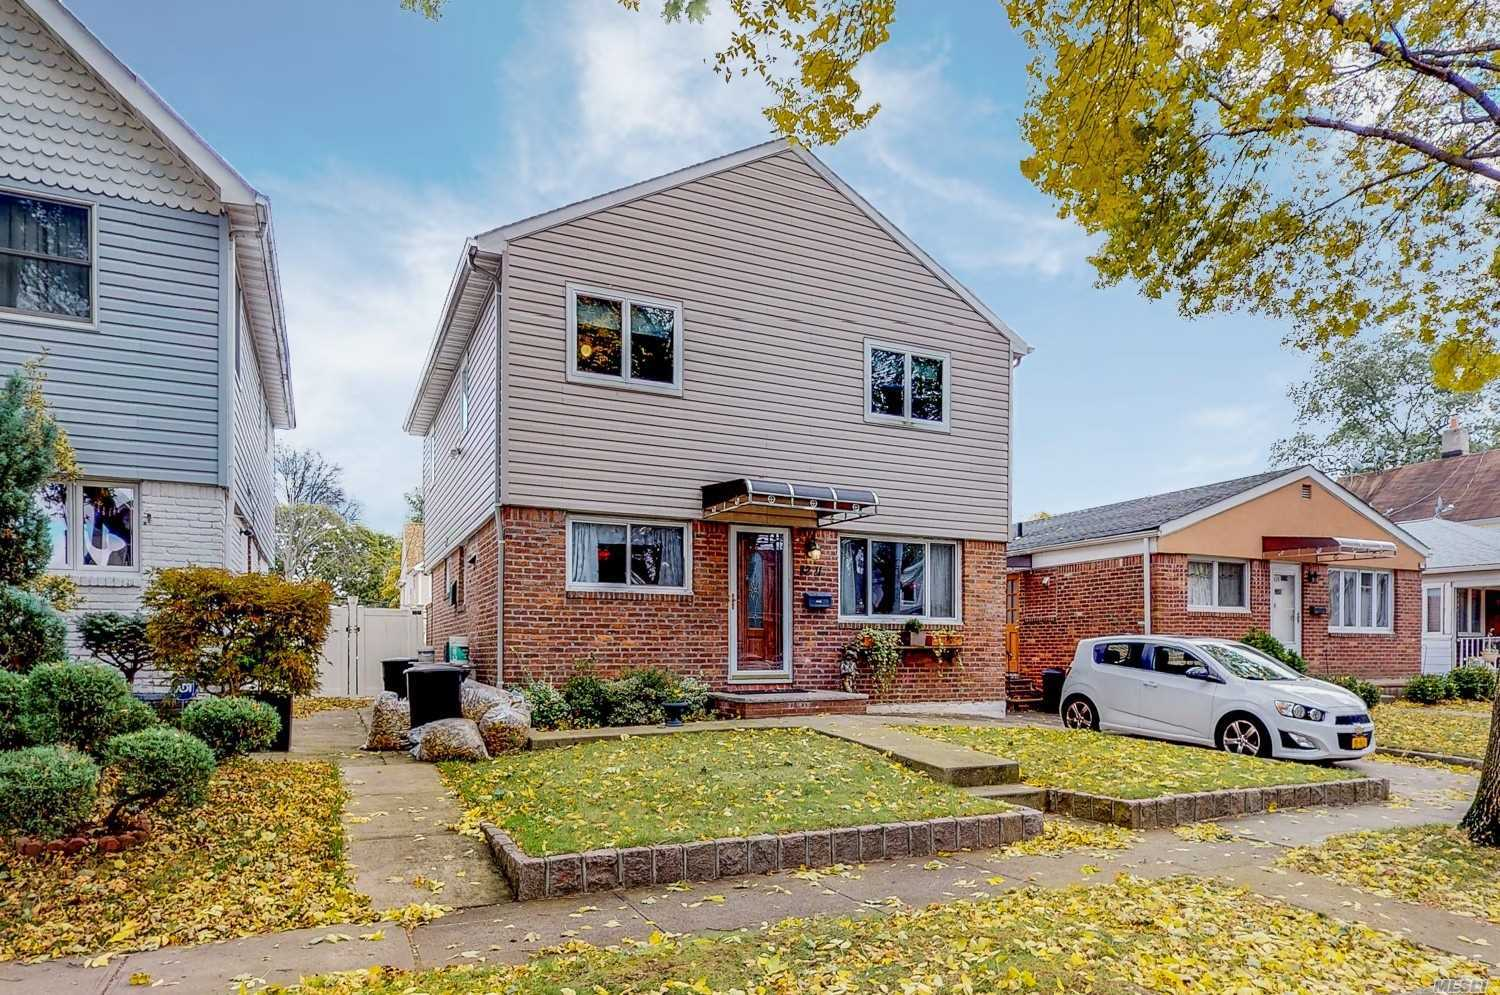 Oversize Colonial Located On A Tree Line Block, North Of Hillside Ave. Fully Renovated In 2002, 5 Large Bedrooms, 4 Large Bedrooms All Located On The 2nd Fl And 1 Bedroom On The 1st Fl. New Boiler, Roof & Hardwood Floors Through Out. Kitchen. Perfect House For A Large Family- Additional Fully Finished Basement, 3 Zone Heat And 2 Zone Central Air And Sprinkler System In Front And Back Yard. Super Convenient To Shopping, Travel & Public Transportation, School District 26.